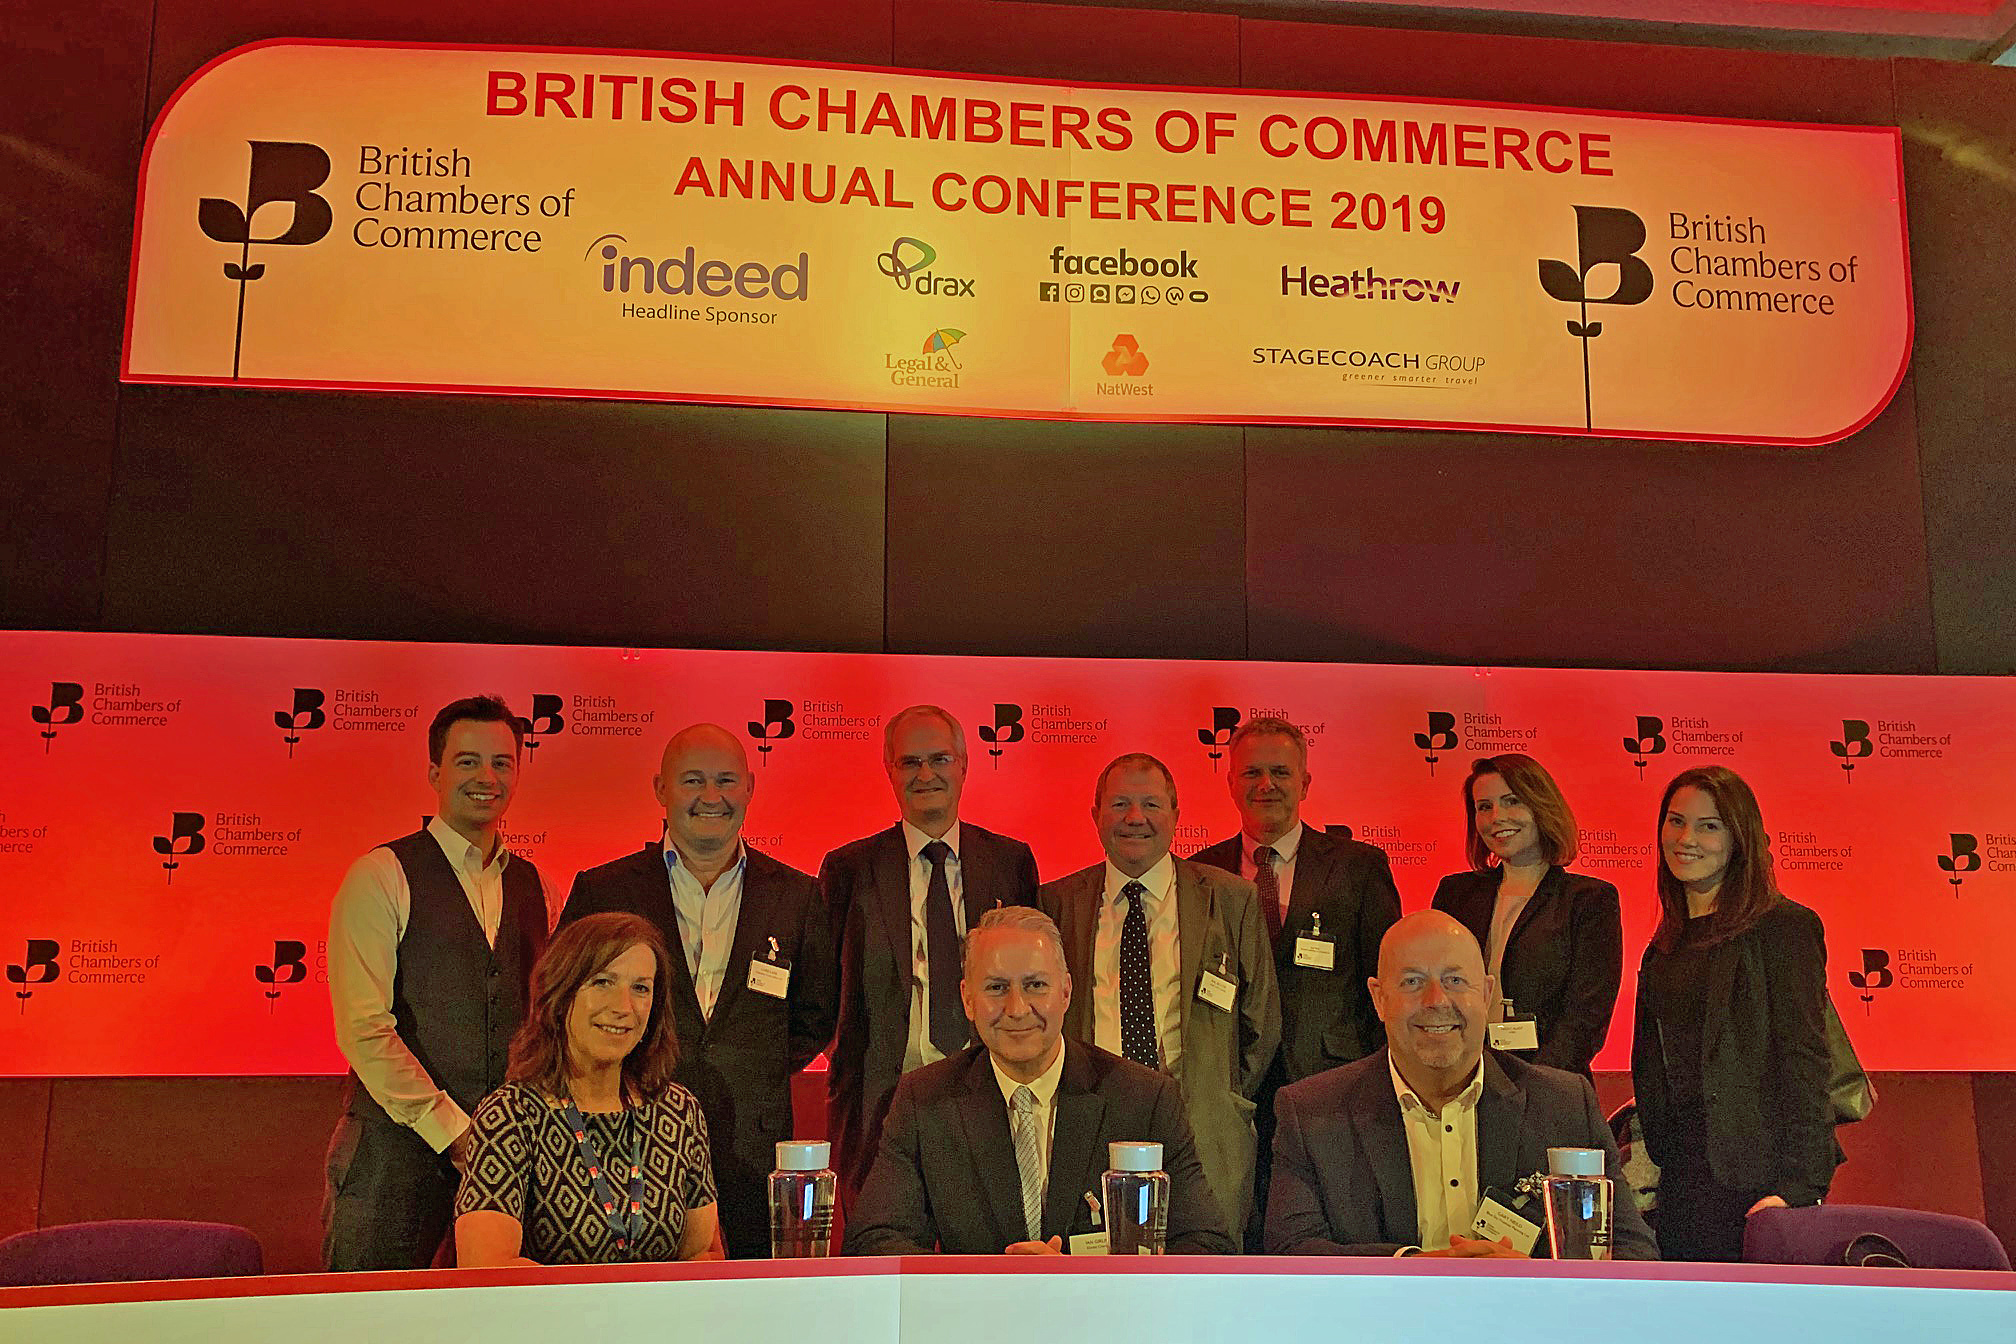 Ian Girling (front, centre) and other Dorset Chamber representatives at the British Chambers of Commerce conference